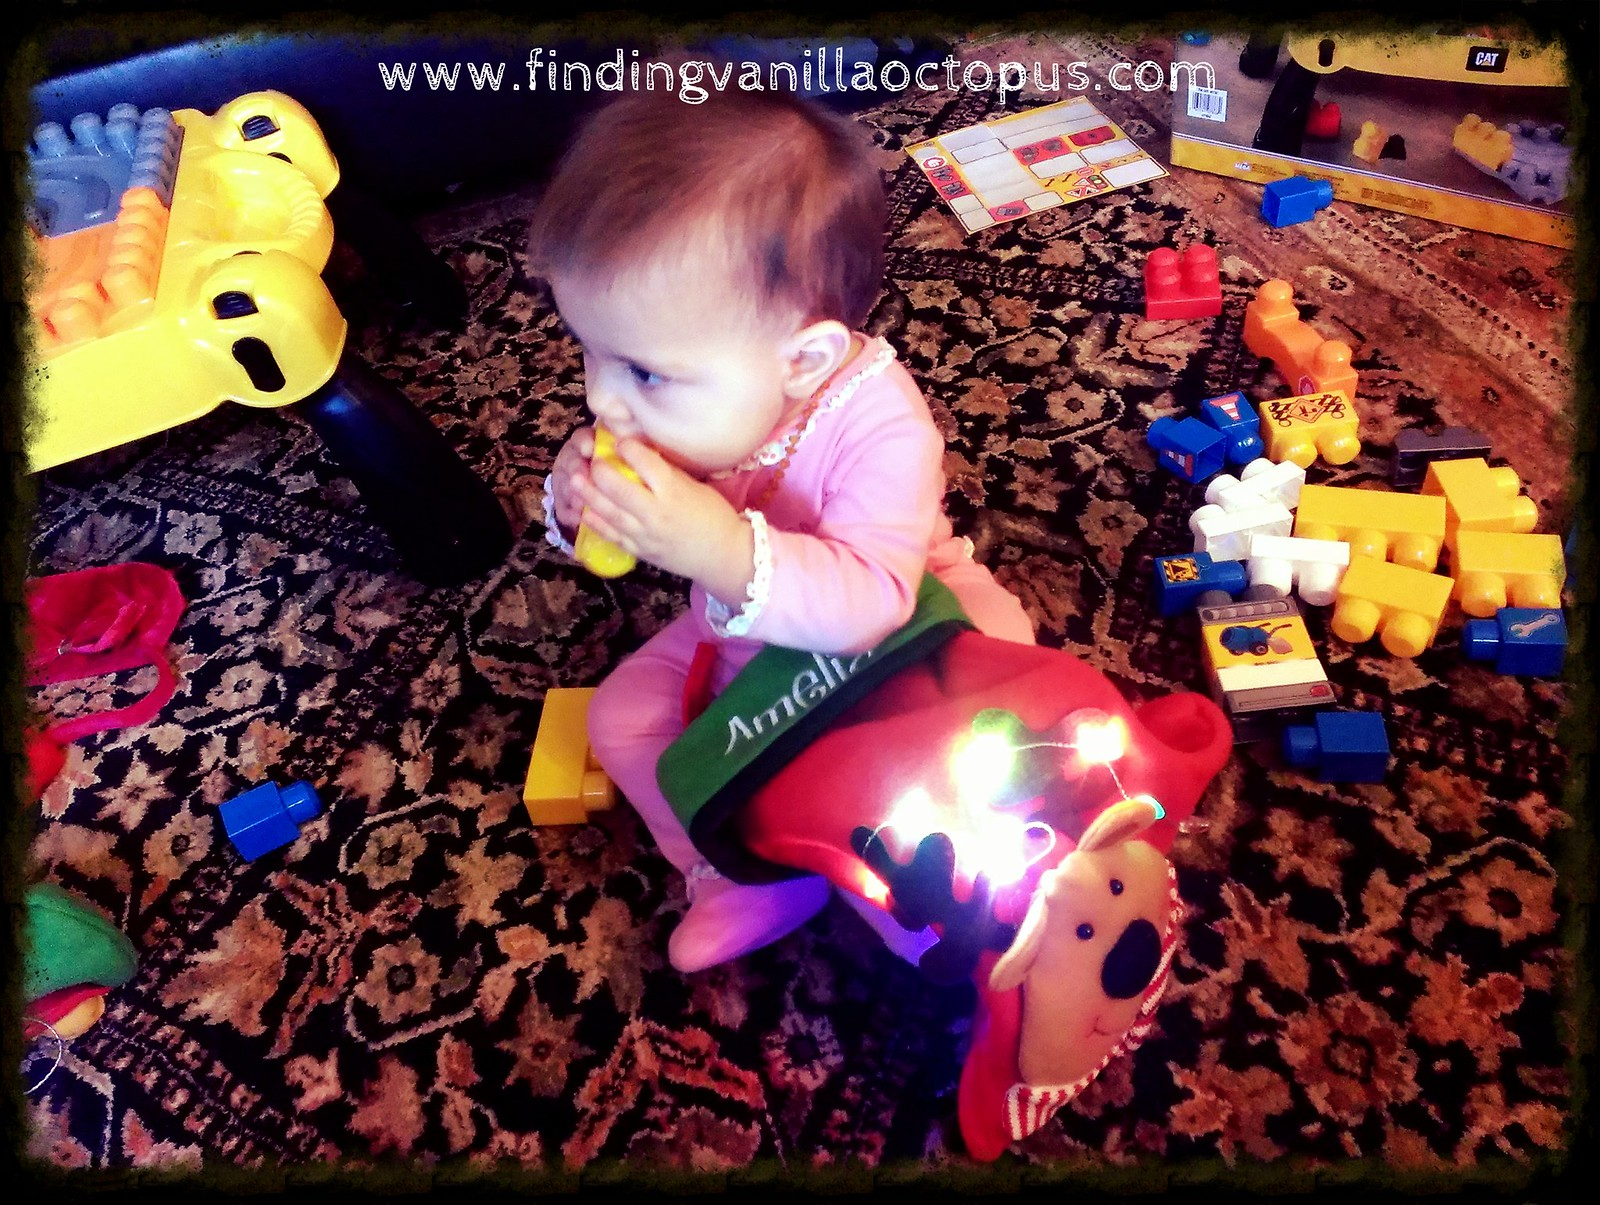 She Was Completely Absorbed With The Glowing Lights On Her